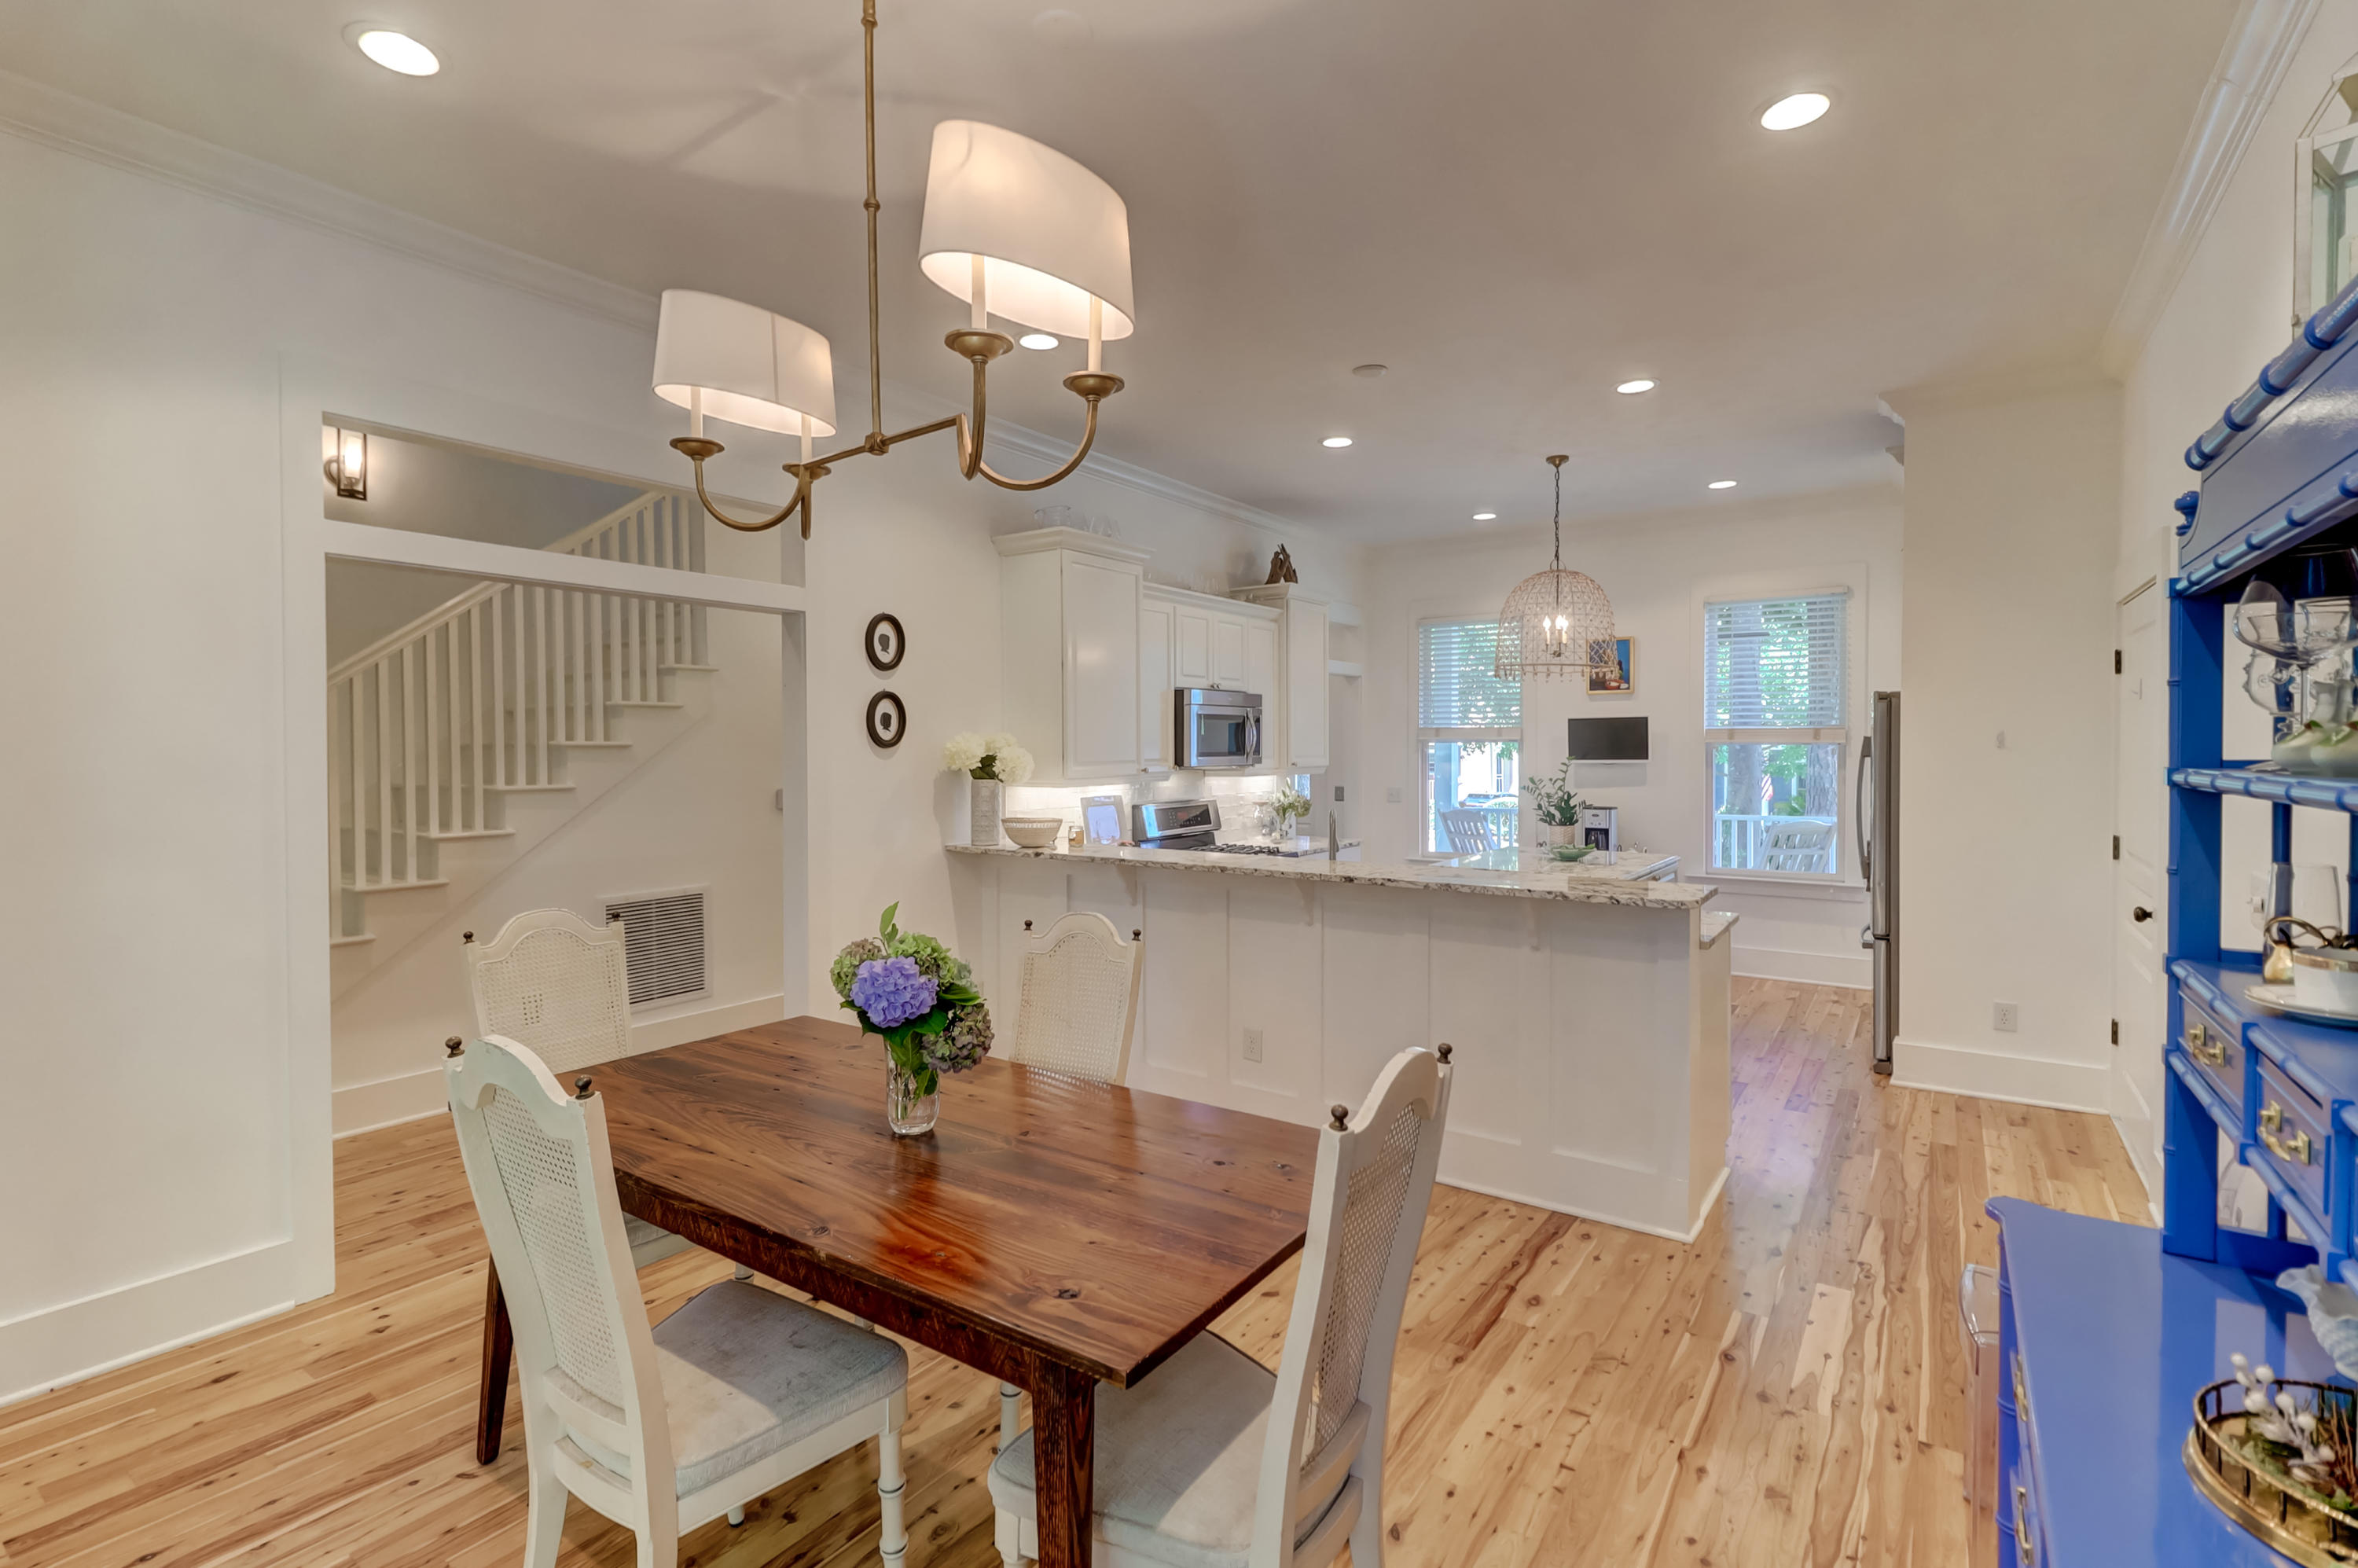 The Villages In St Johns Woods Homes For Sale - 5056 Coral Reef Dr, Johns Island, SC - 63